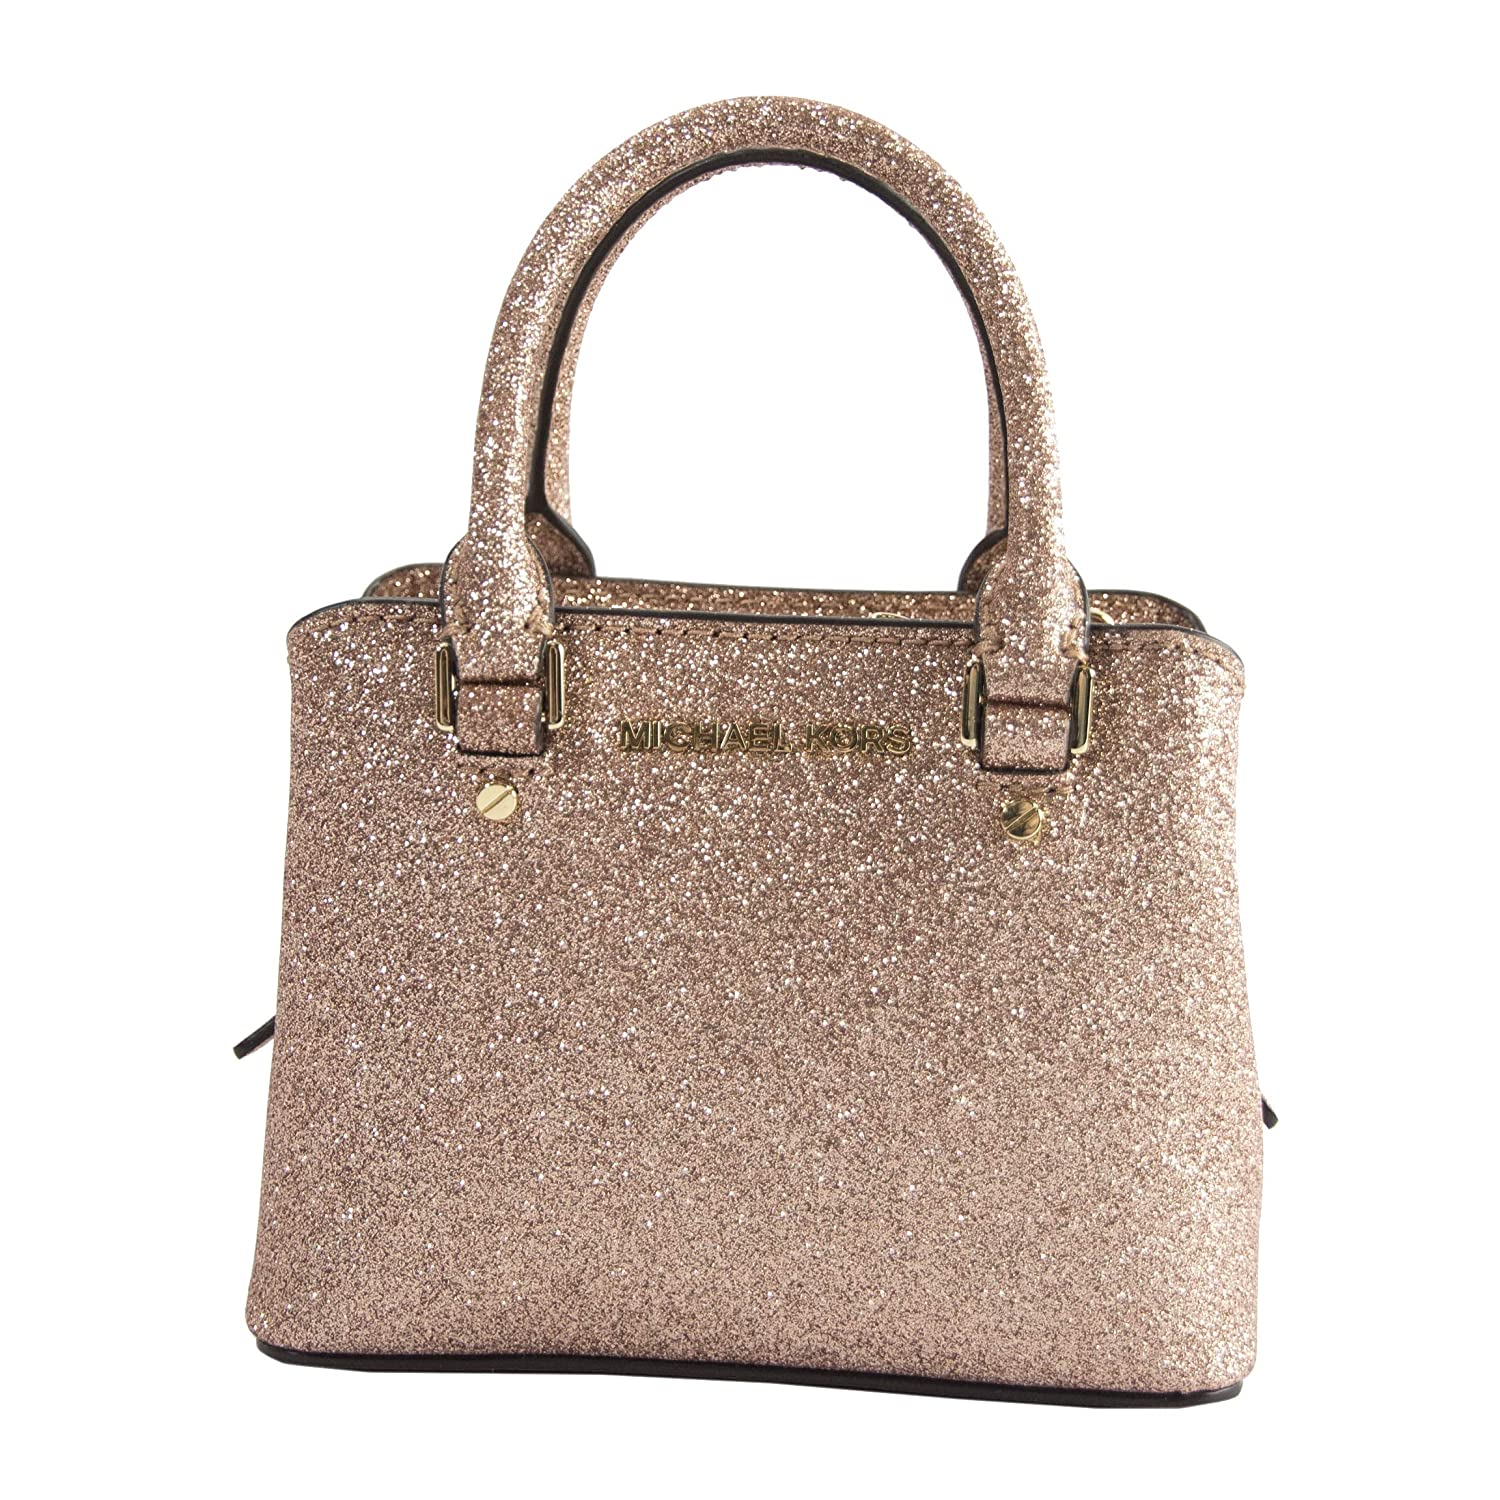 56ee92562f33b Michael Kors Rose Gold Glitter Leather MICRO MINI Savannah Satchel Bag  Wallet  Handbags  Amazon.com